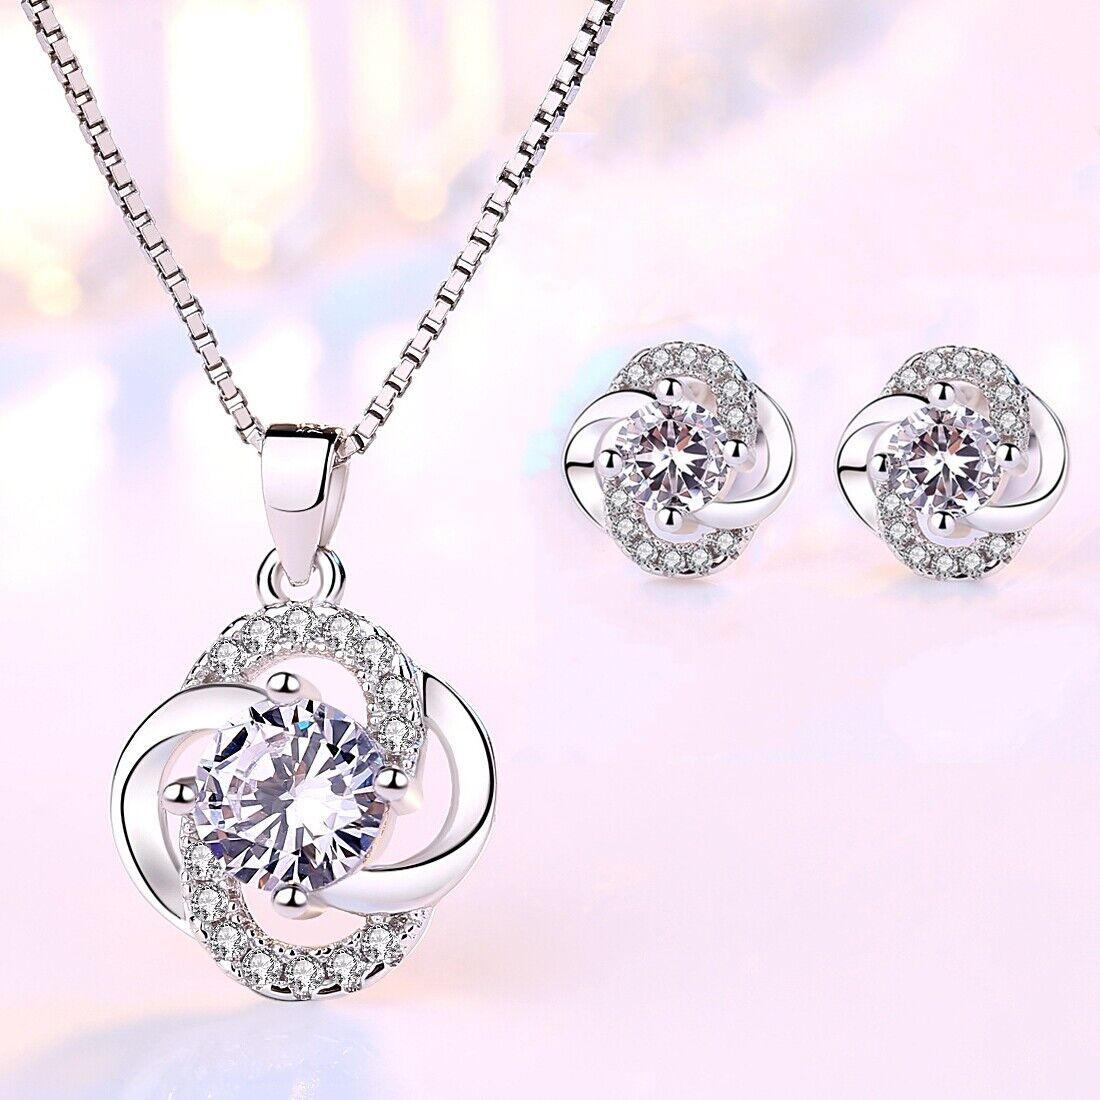 Jewellery - 925 Sterling Silver Crystal Swirl Necklace Stud Earrings Womens Girls Jewellery